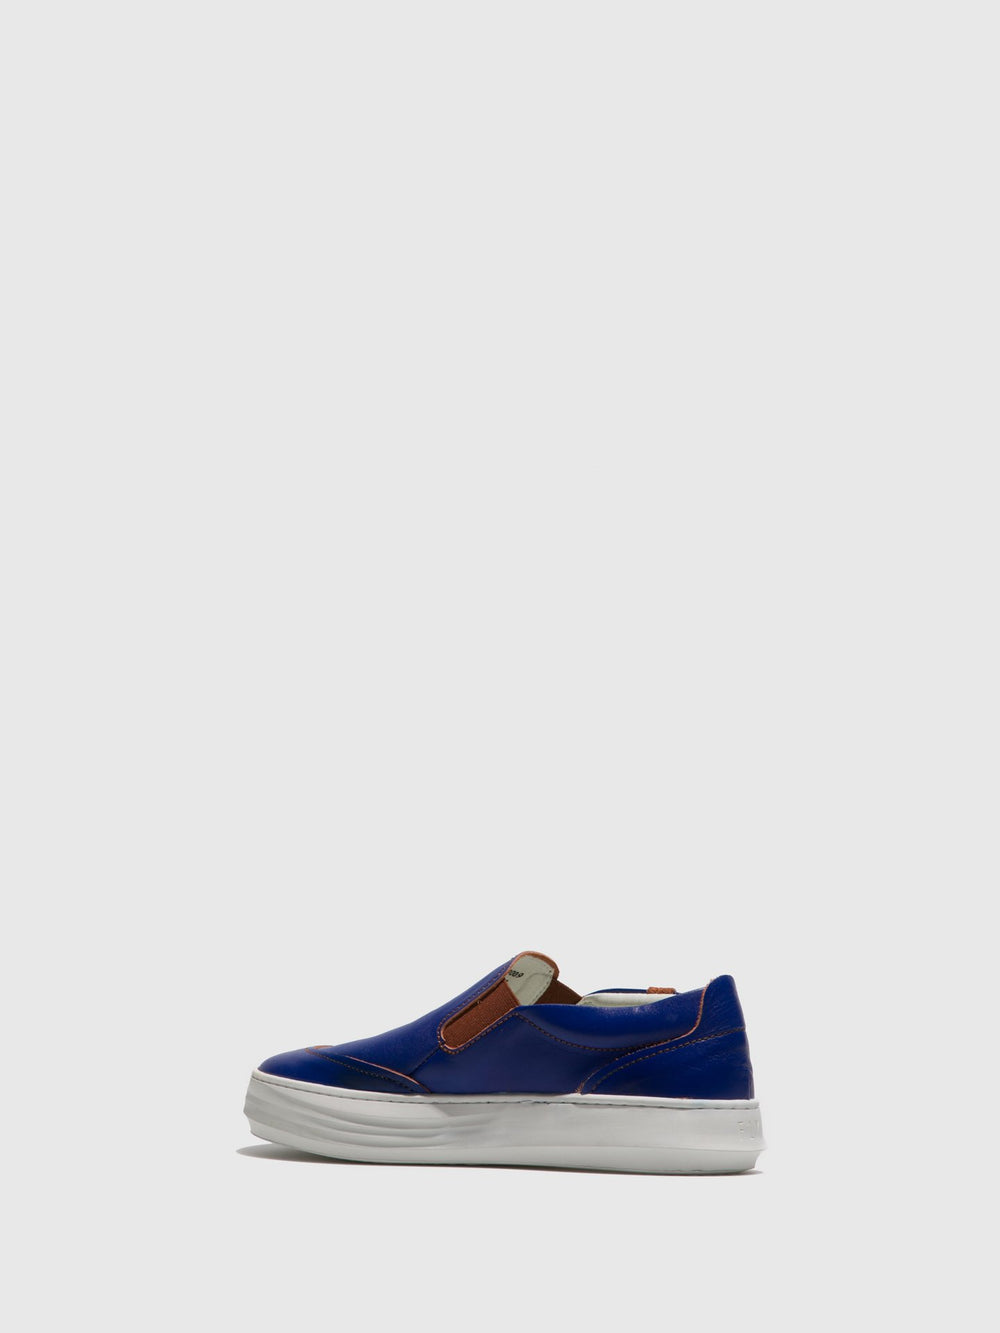 Blue Slip-on Trainers